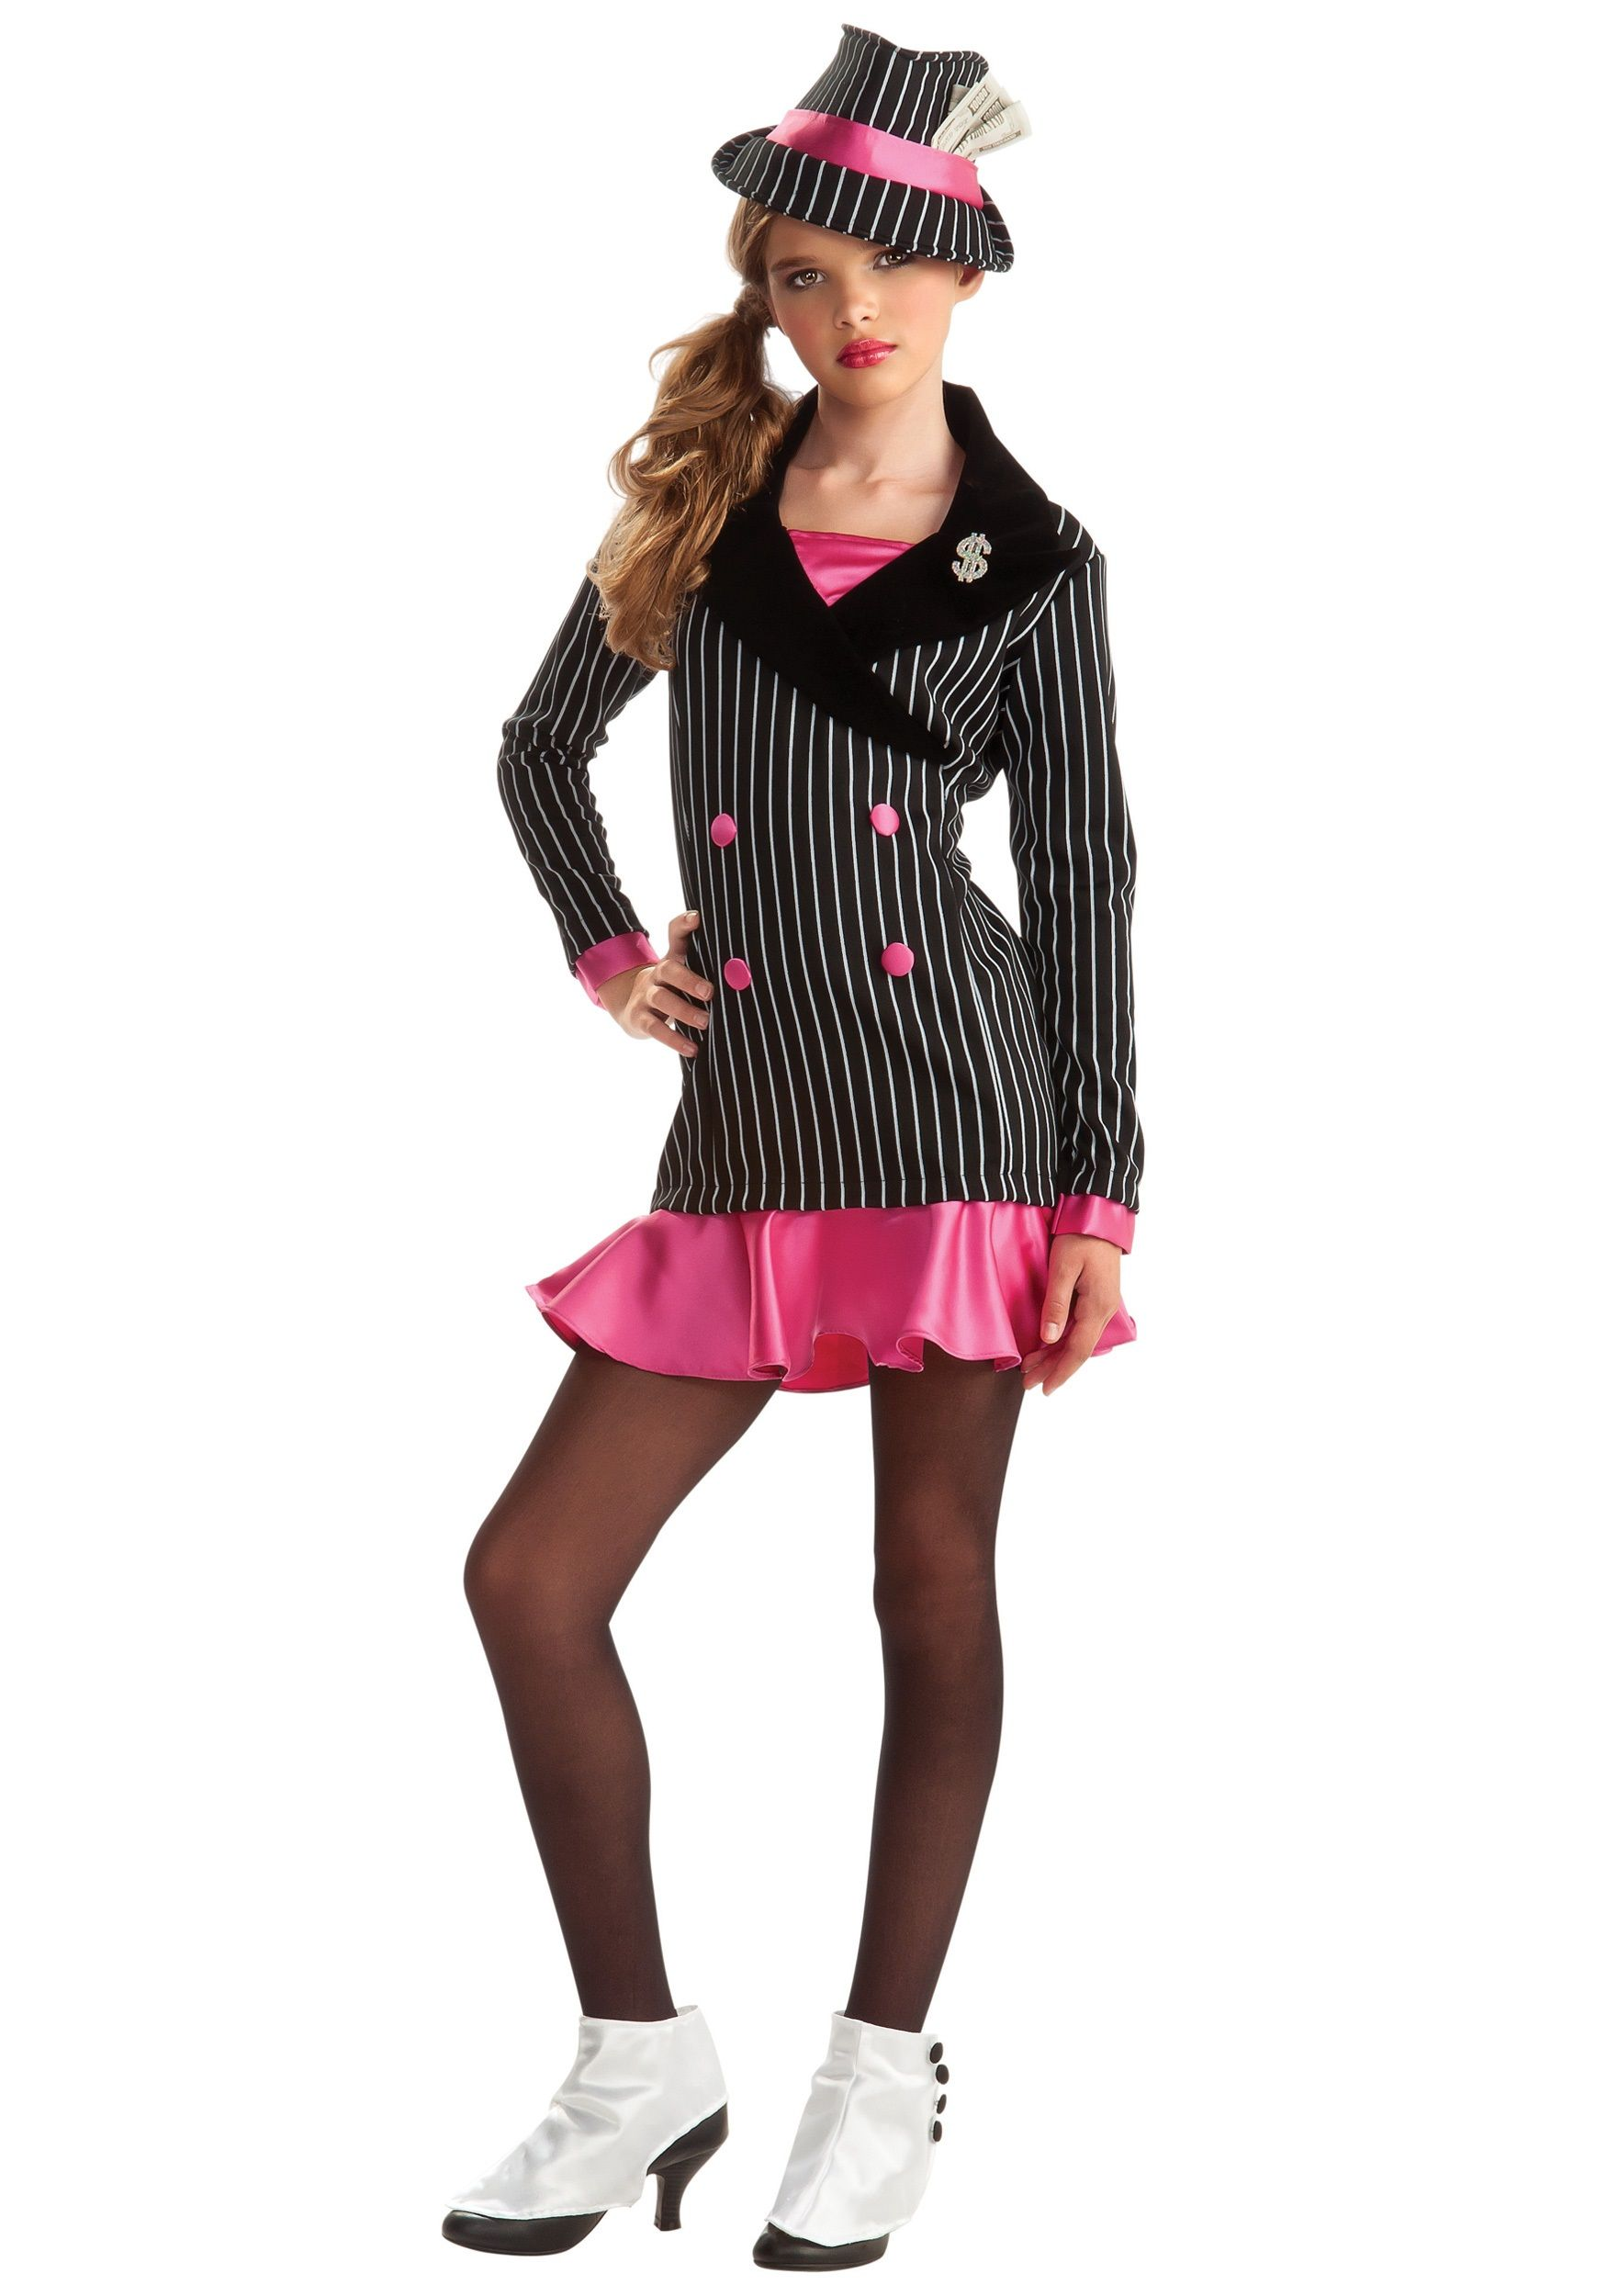 tween costumes for girls | Home All Costumes Child Gangster Costumes ...